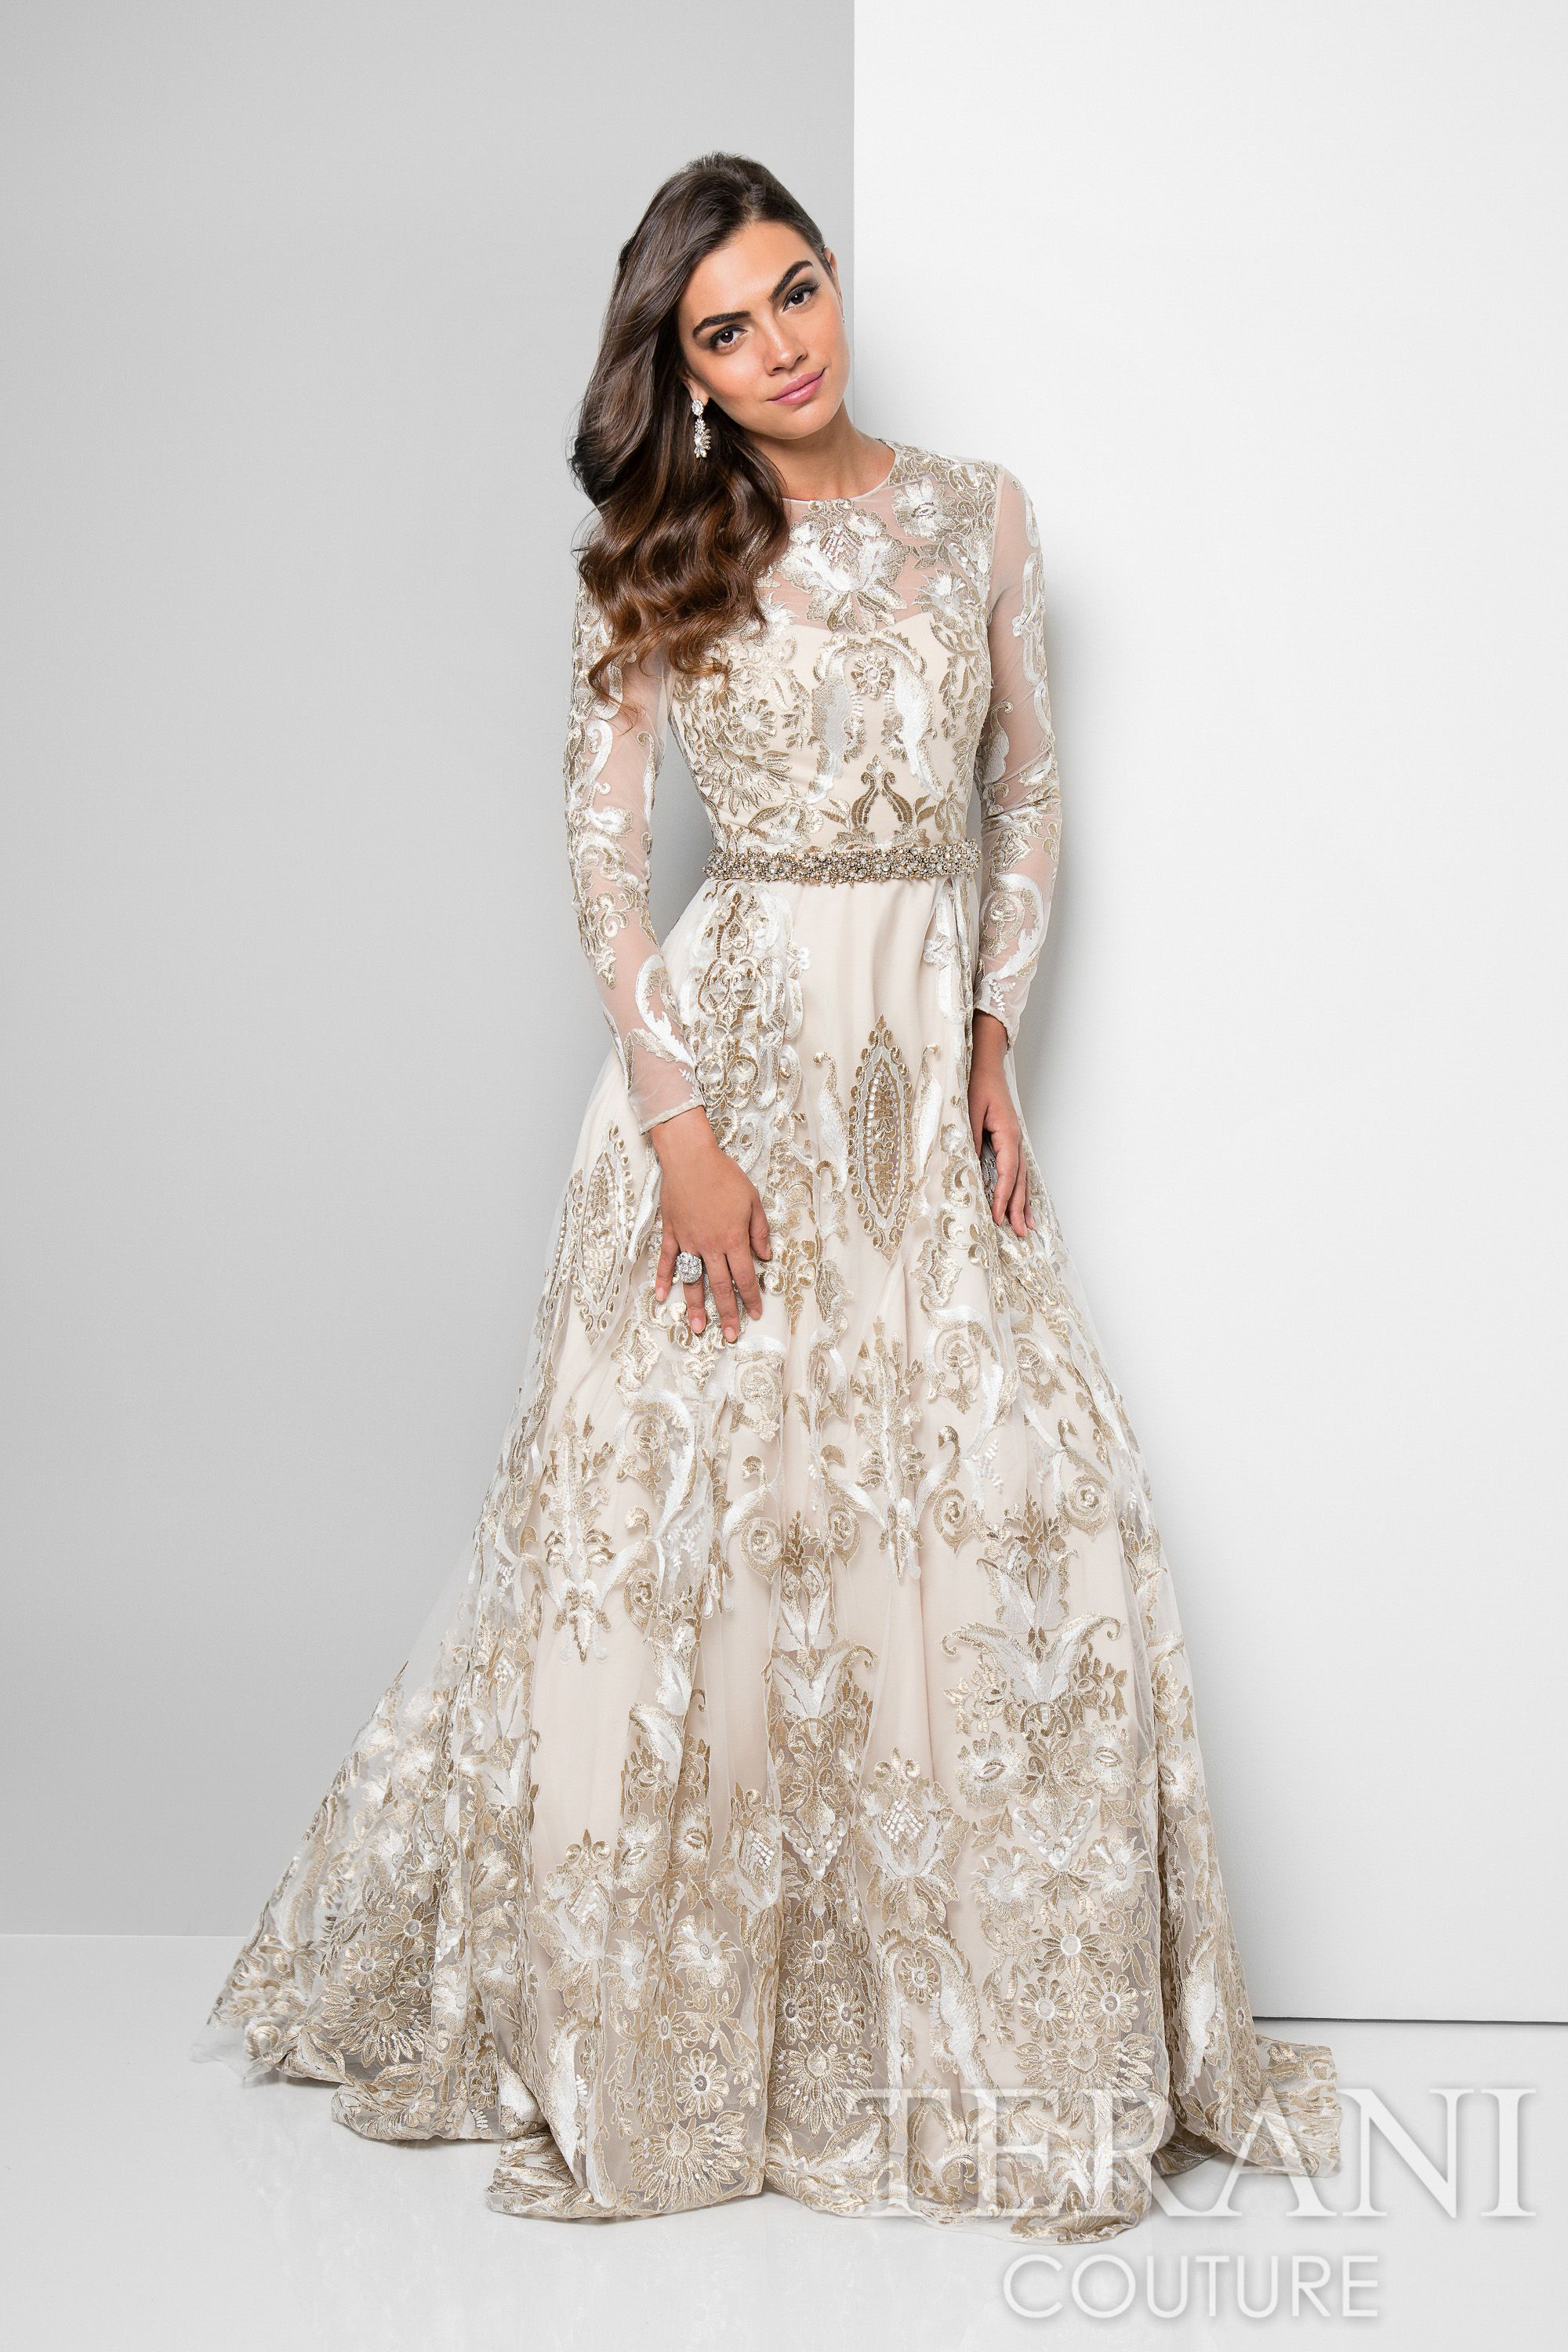 Designer dress with two tone metallic embroidery that is artfully designer dress with two tone metallic embroidery that is artfully placed on this red carpet ombrellifo Image collections